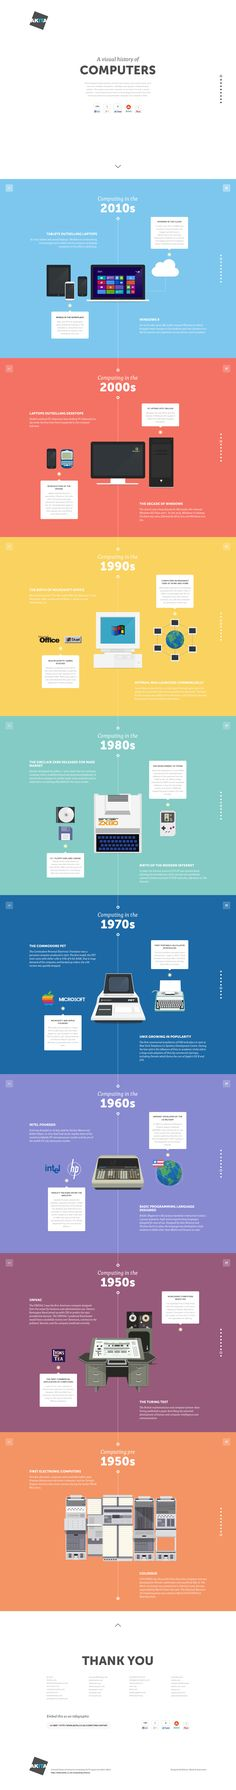 Infographic - Infographic Design Inspiration - A visual history of computers [JPG] Infographic Infographic Design : – Picture : – Description A visual history of computers [JPG] Infographic -Read More – Web Design Mobile, Web Ui Design, Flat Design, Design Websites, Graphic Design, Information Design, Information Graphics, Evolution Design, Folders